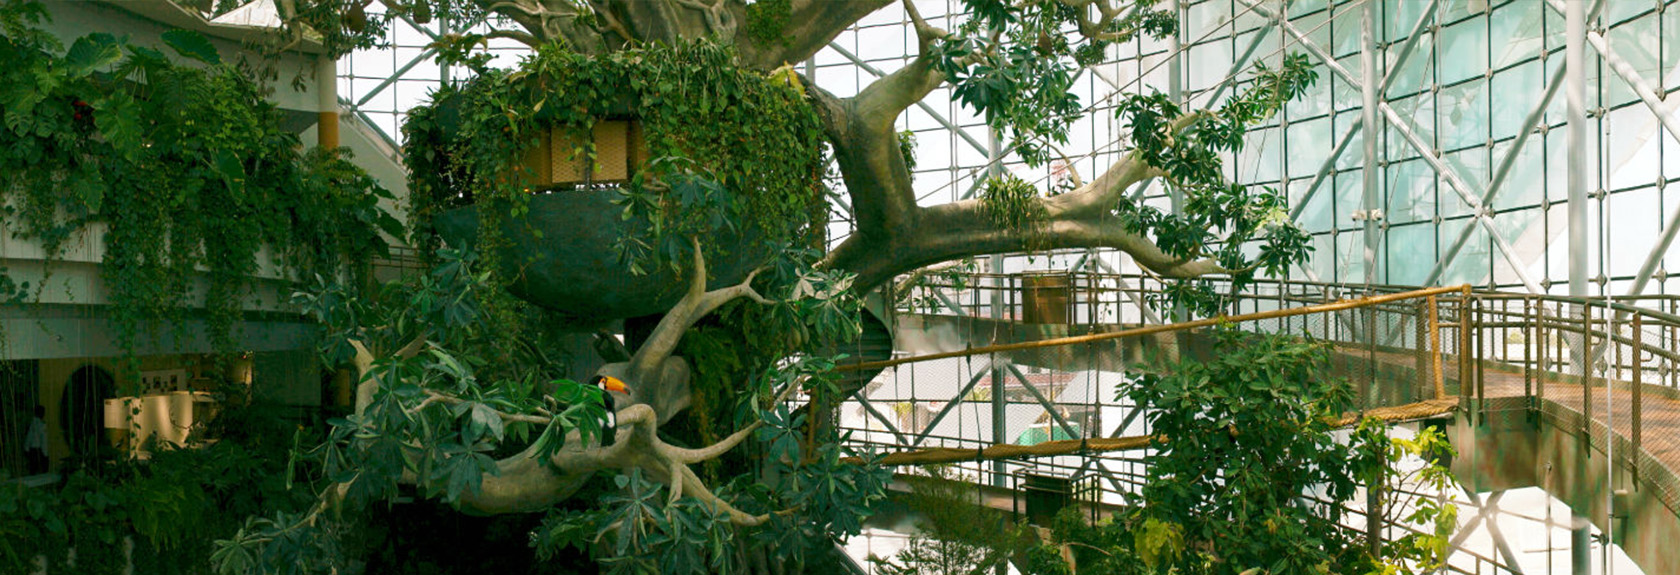 The Green Planet – an indoor tropical rain forest in the desert